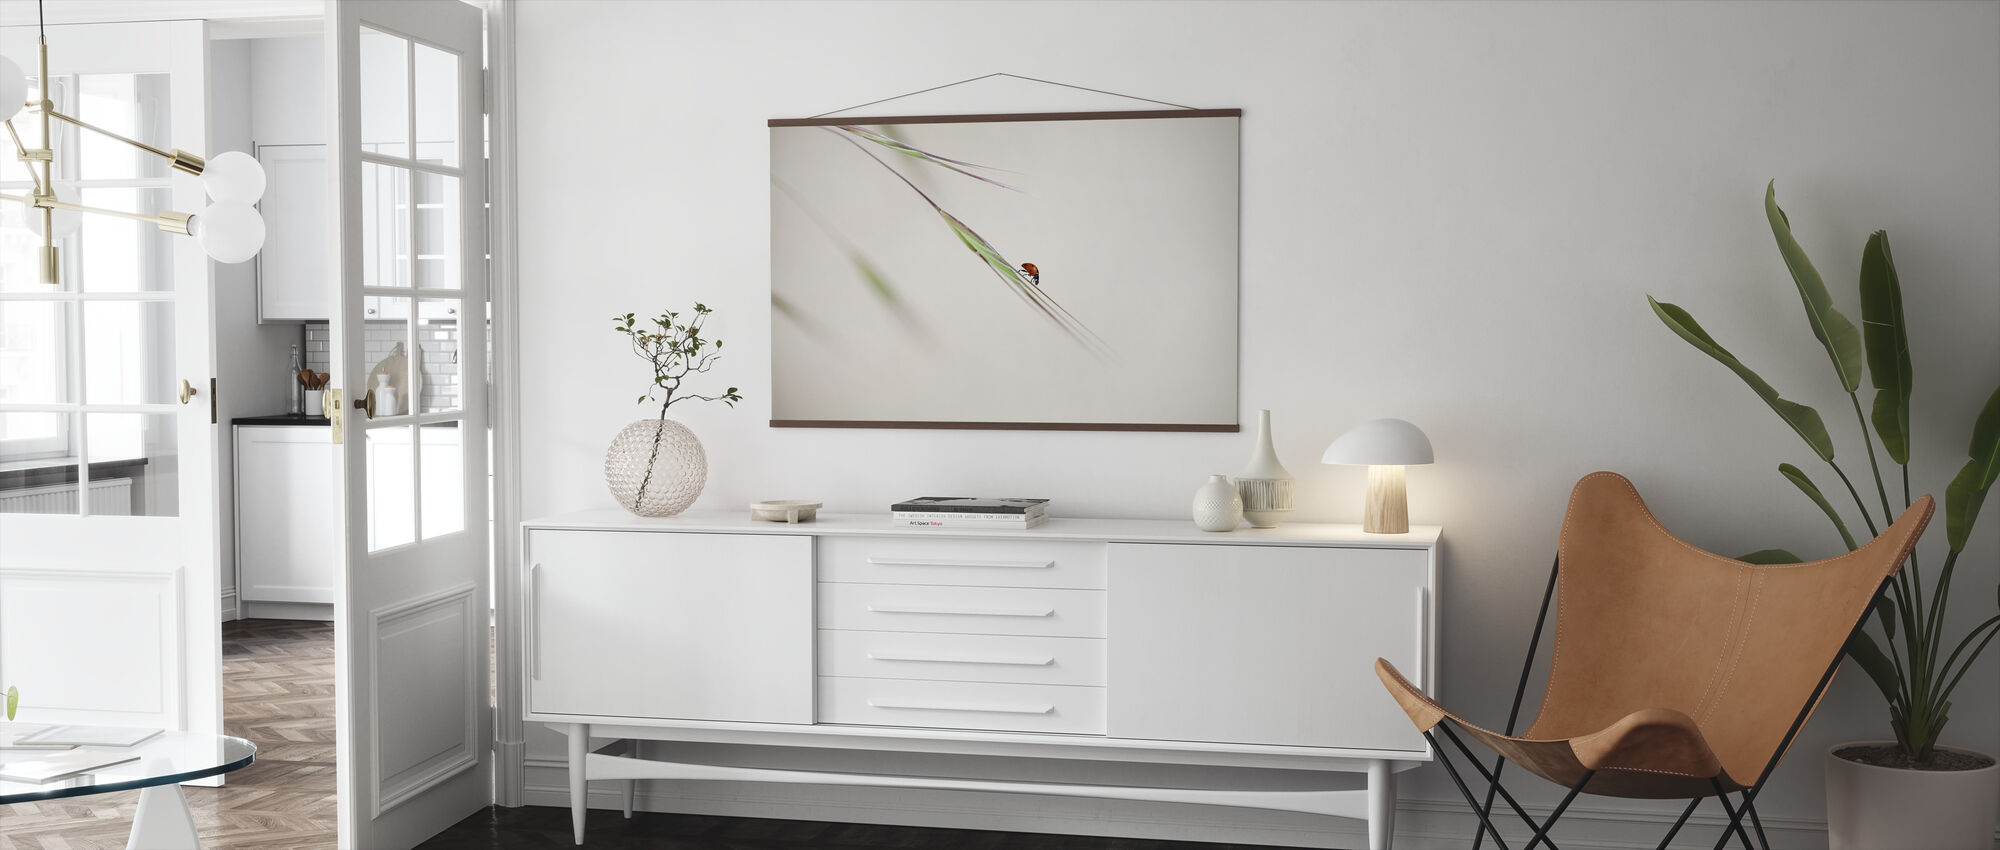 Ladybug in Focus - Poster - Living Room